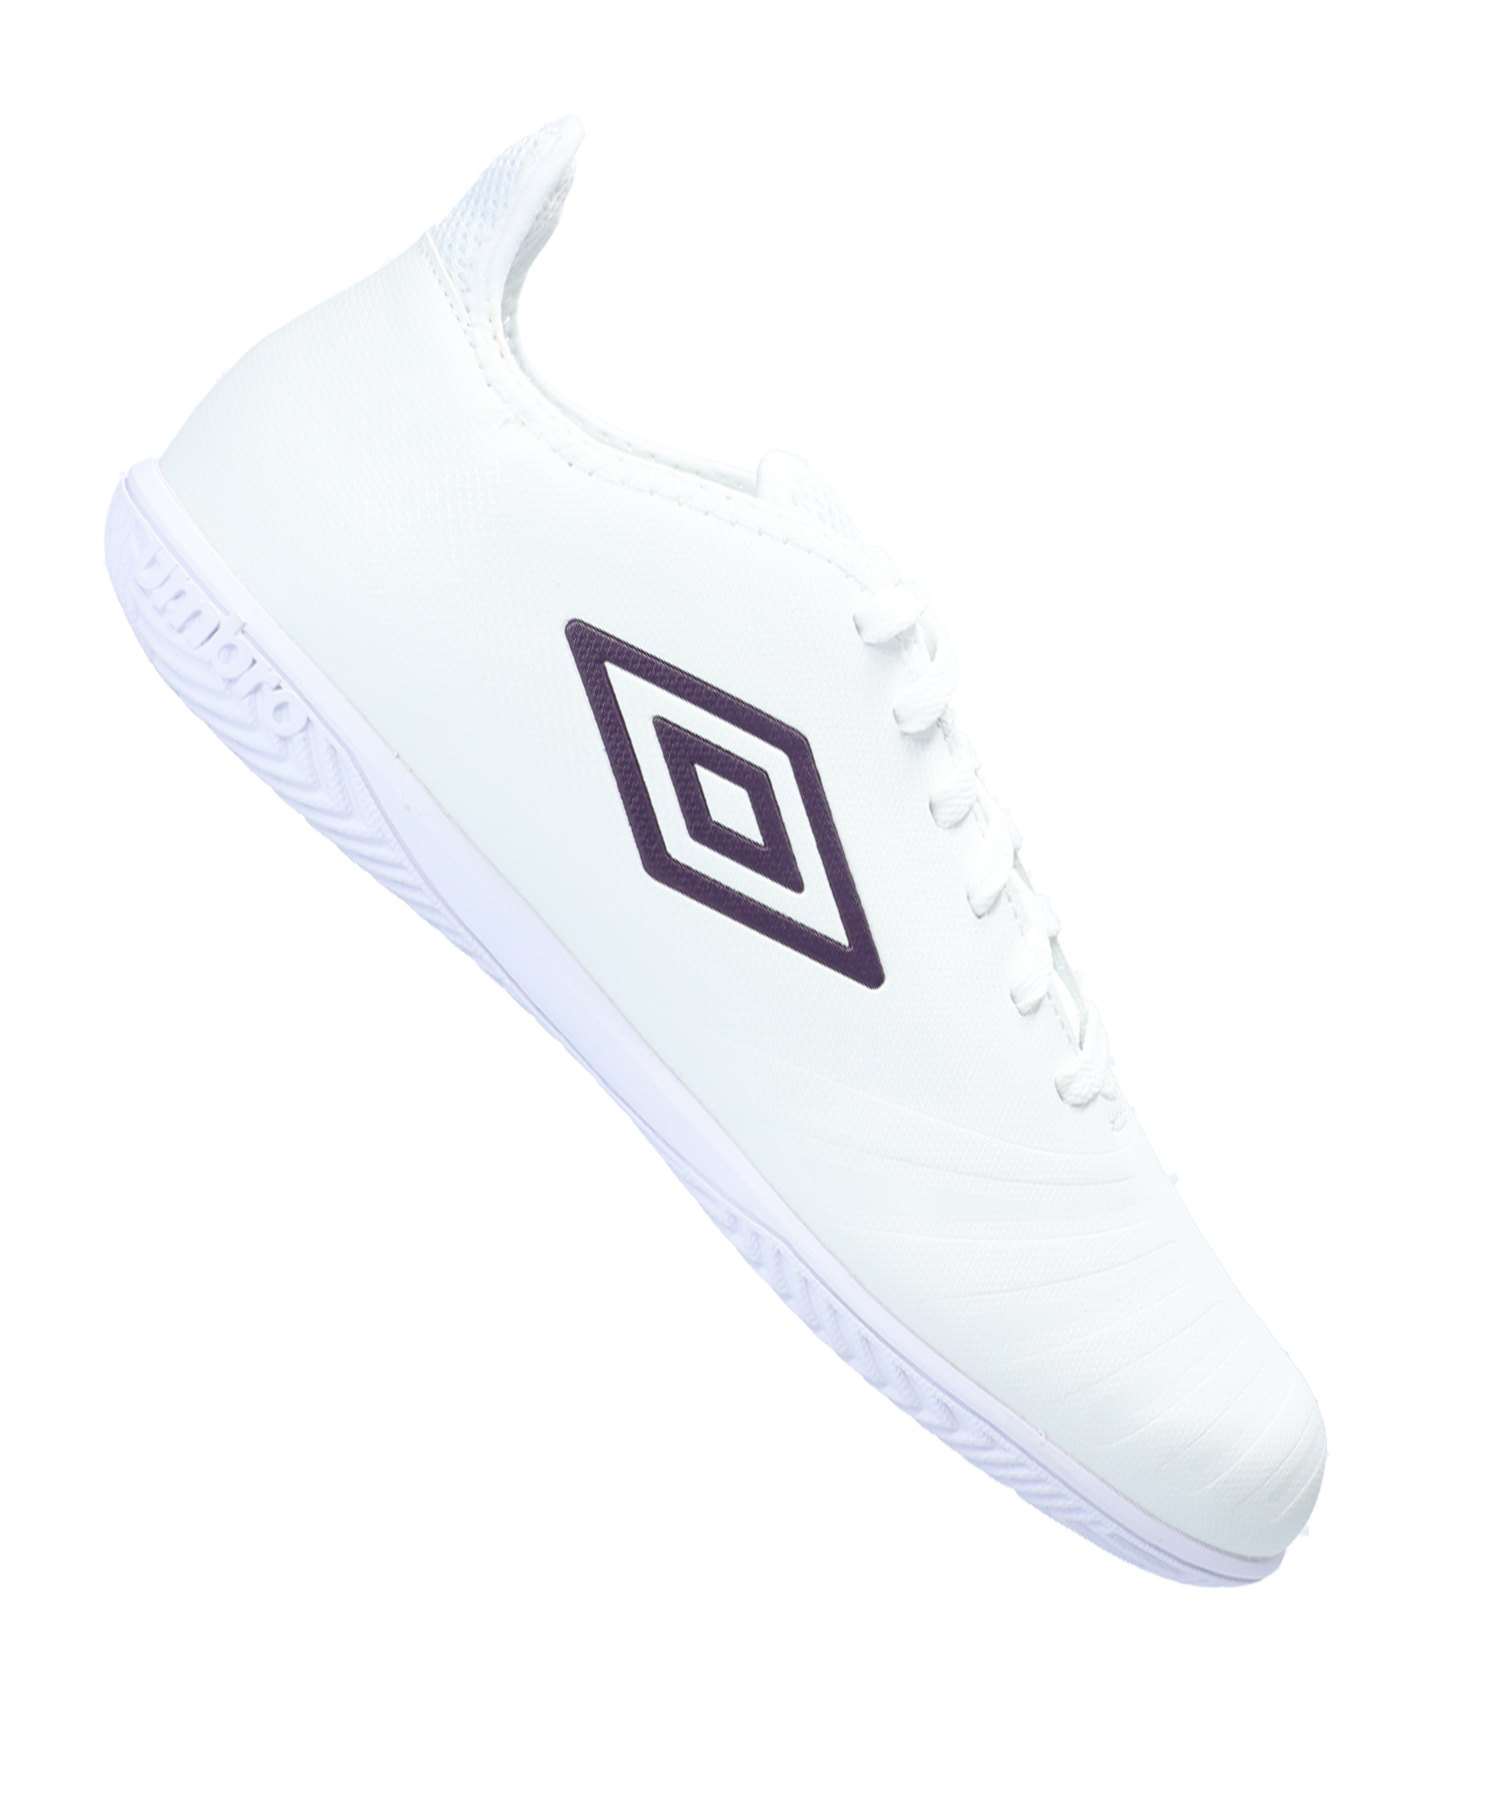 Umbro UX Accuro III Club IC Weiss FHPV - Weiss